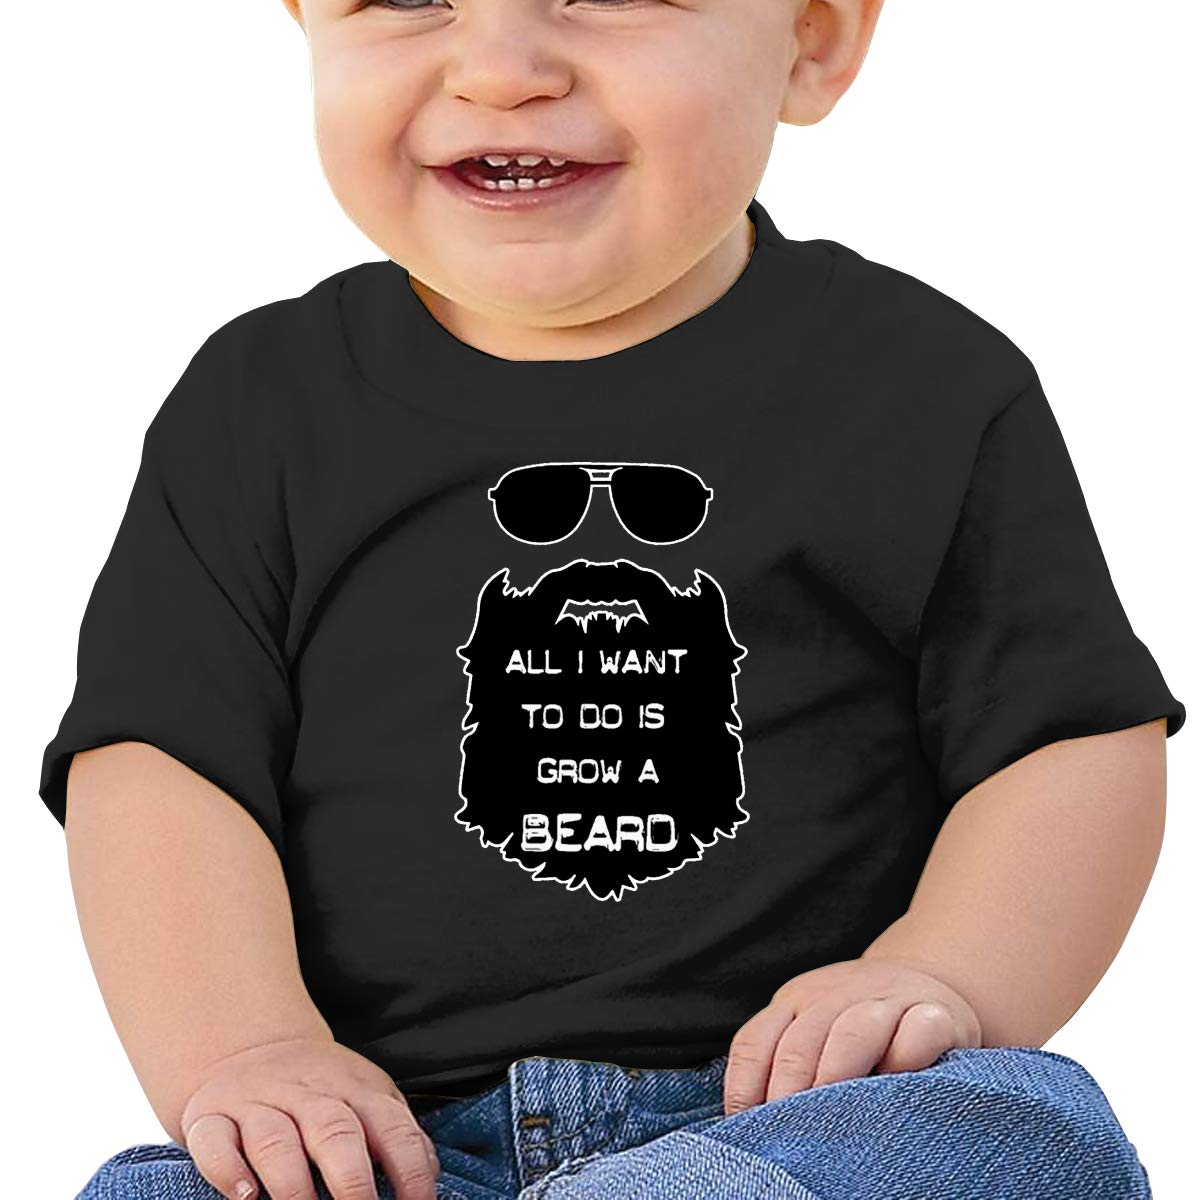 All I Want to Do is Grow A Beard Baby T-Shirt Little Baby Cotton T Shirts Cartoon Tee Shirts for 6M-2T Baby